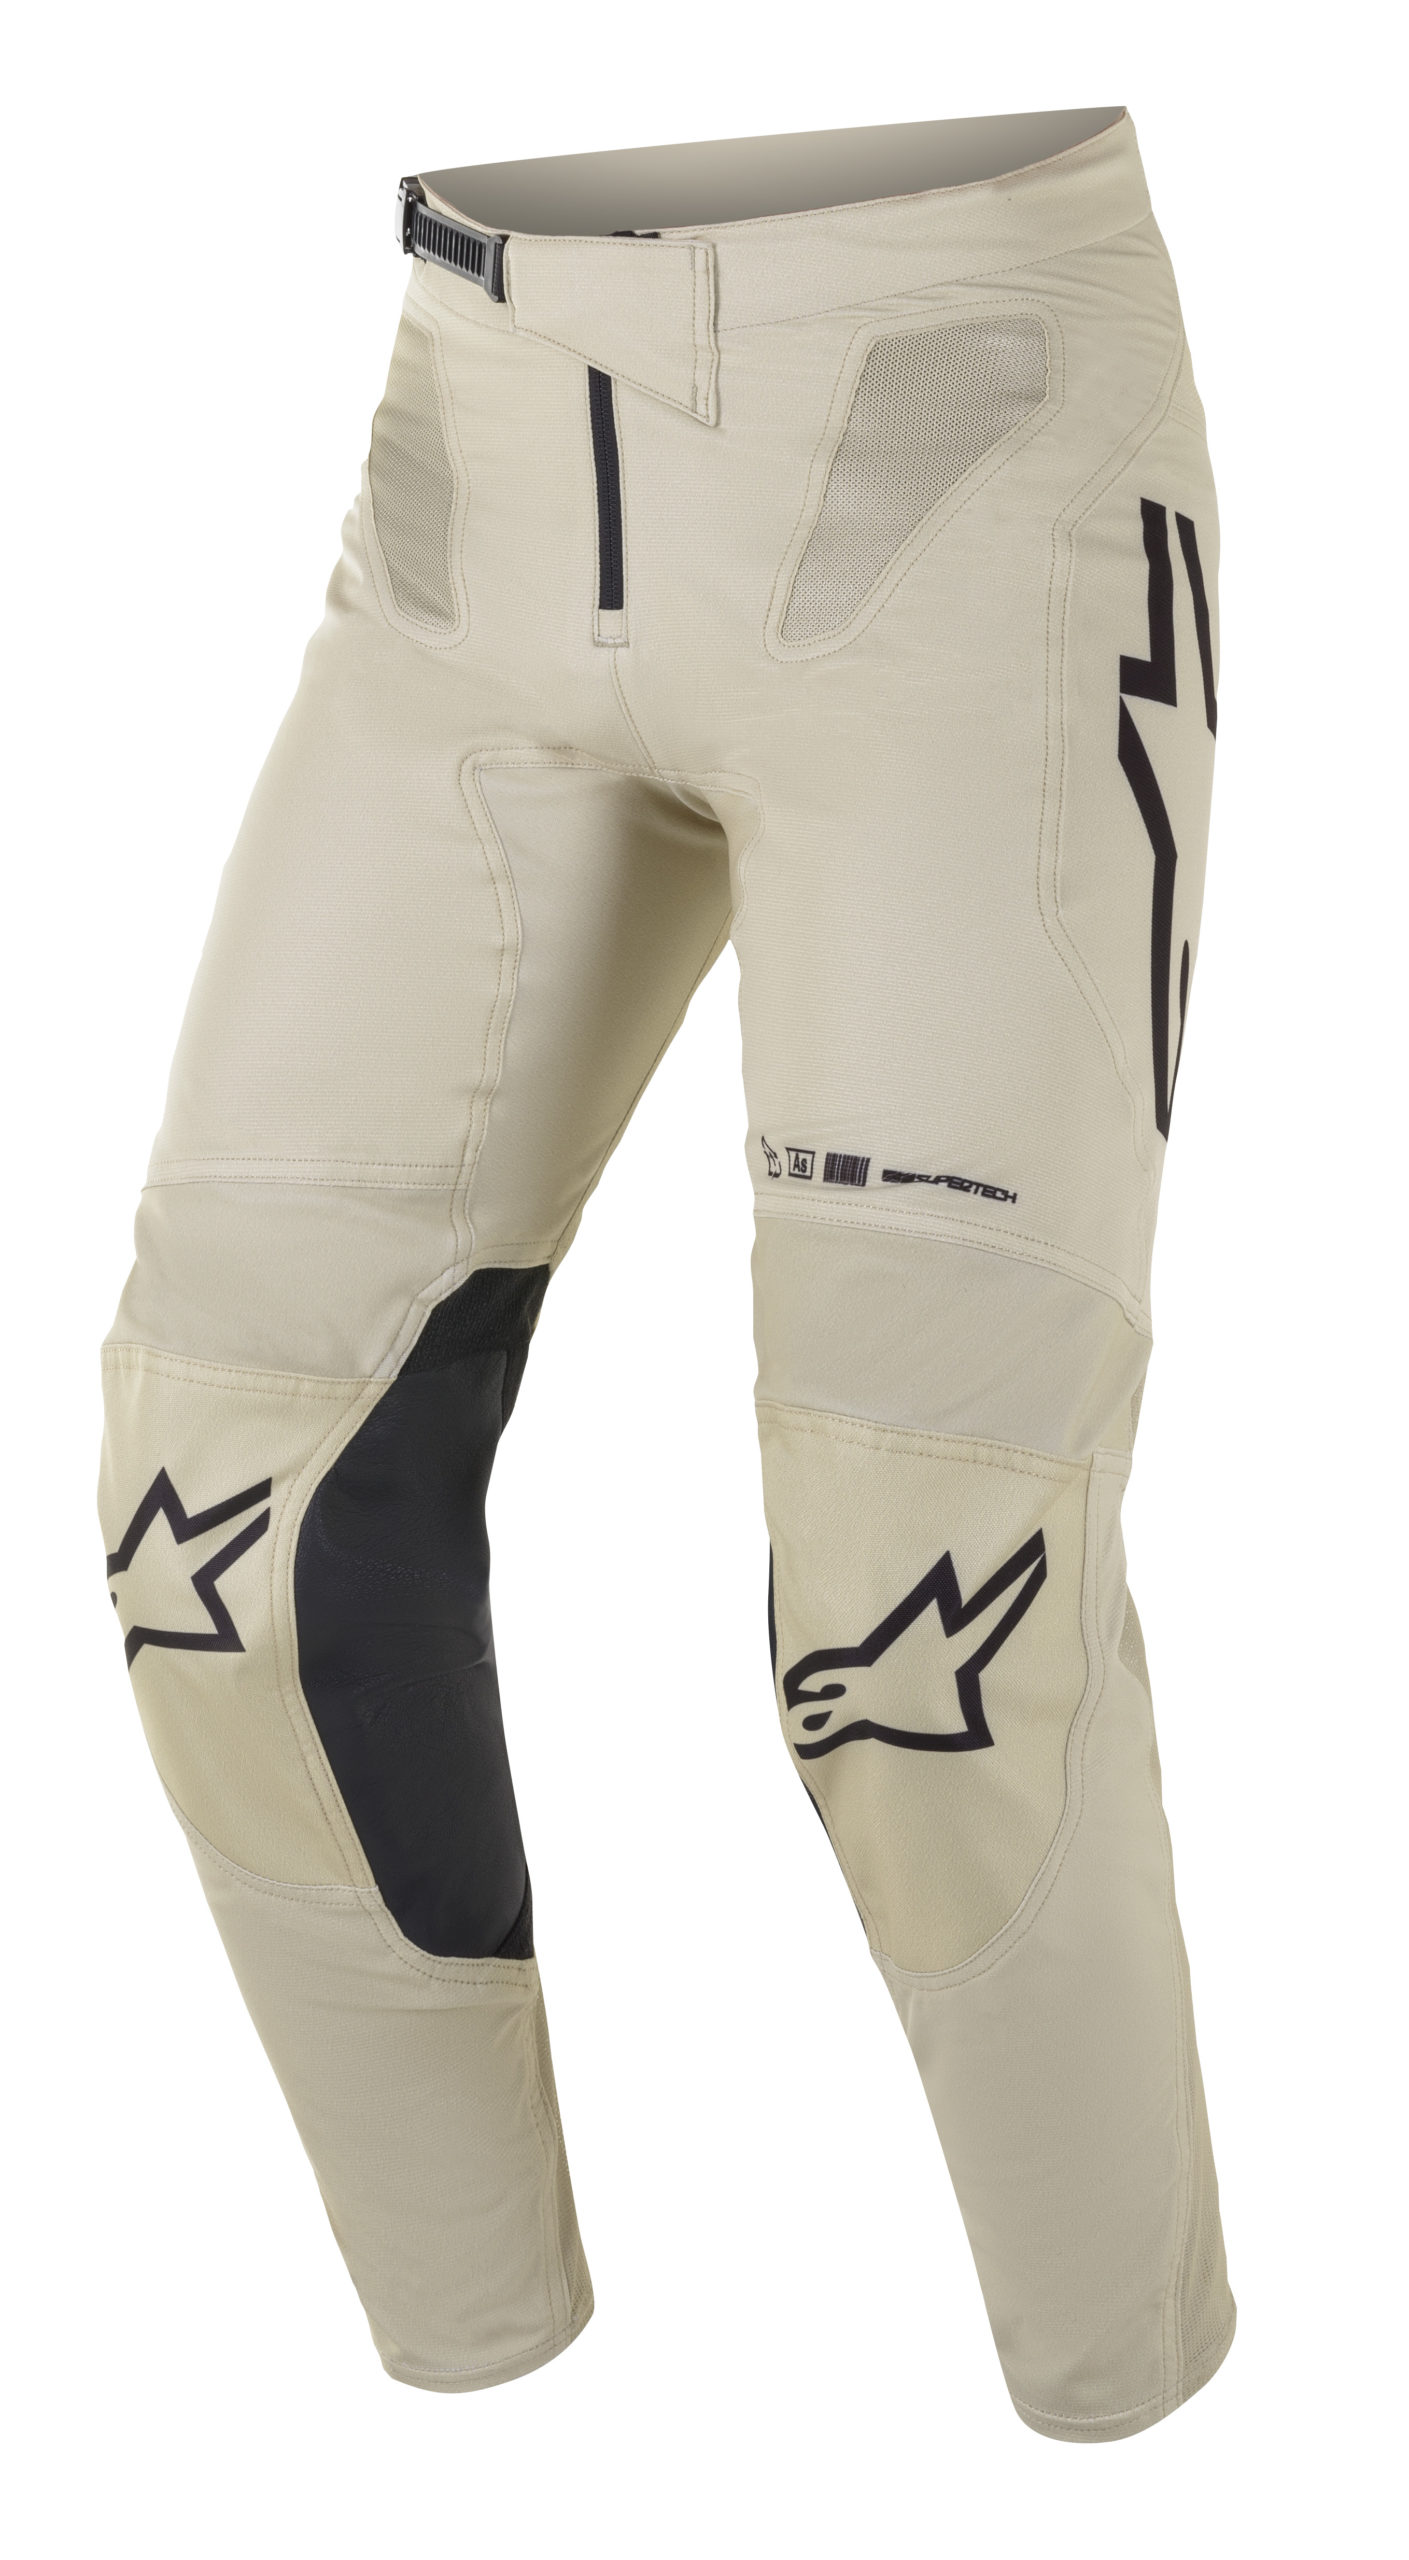 2021 SUPERTECH FOSTER PANT (more colours available)